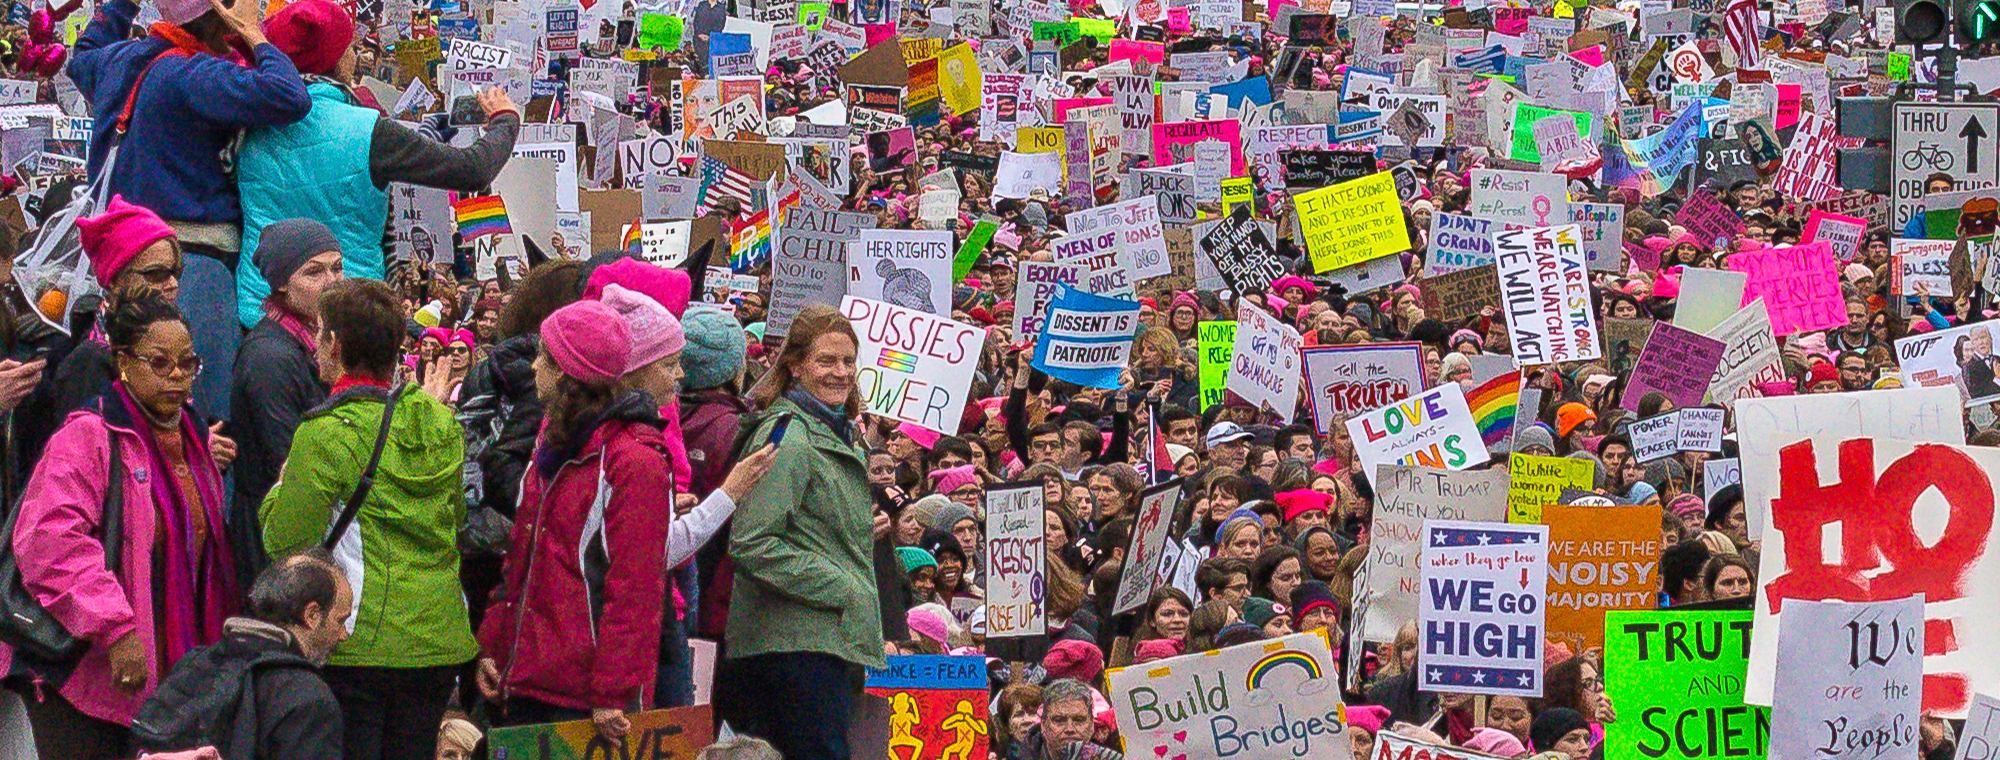 Flickr Women's March on Washington by Mobilius in Mobili (cc)